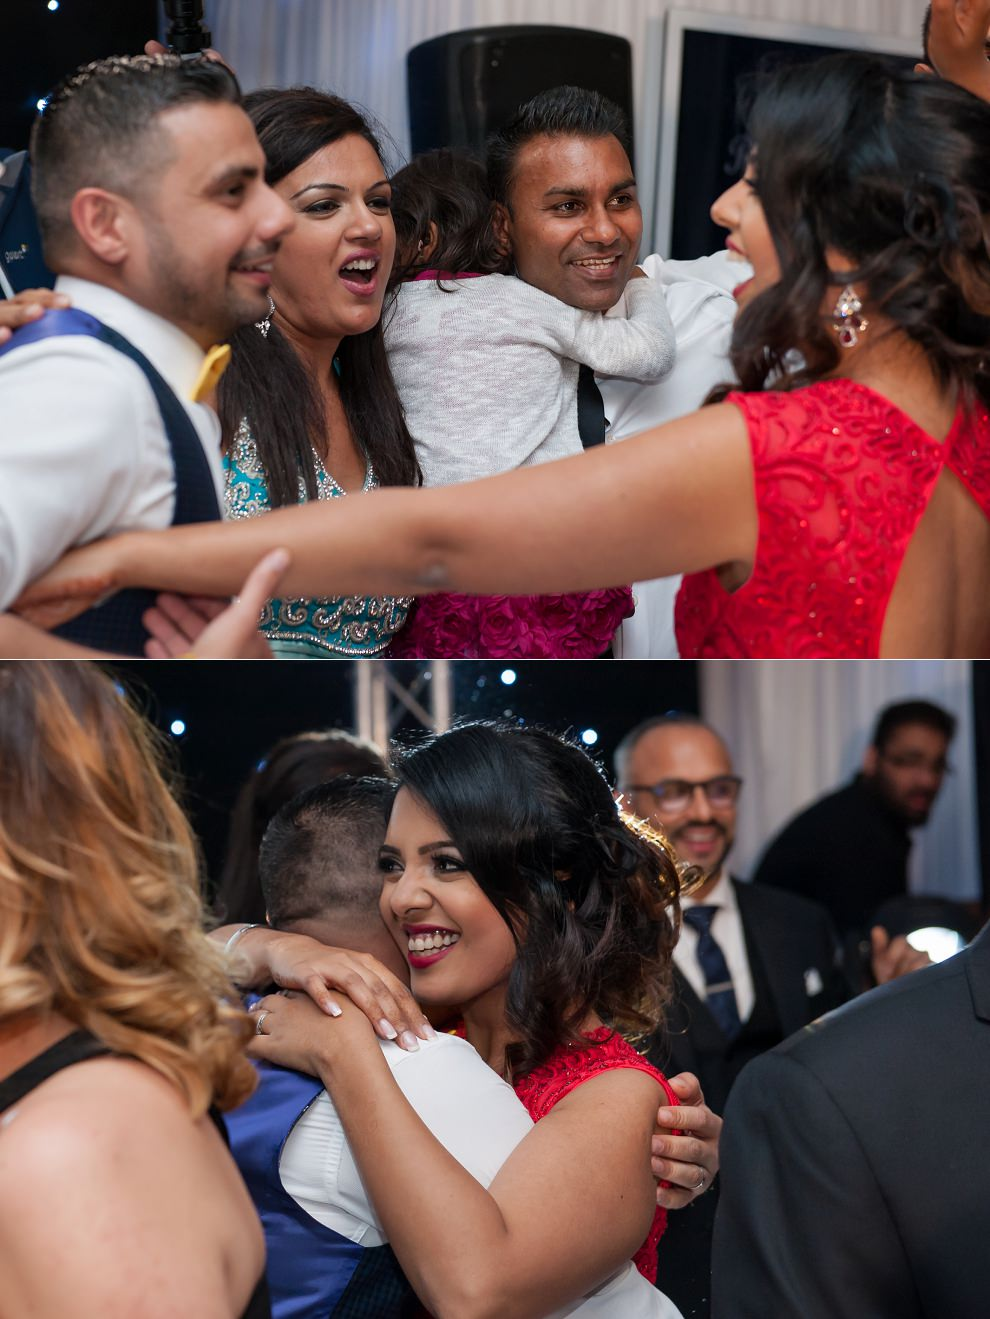 Boreham-House-Wedding-Essex-Rupal Dipen-72